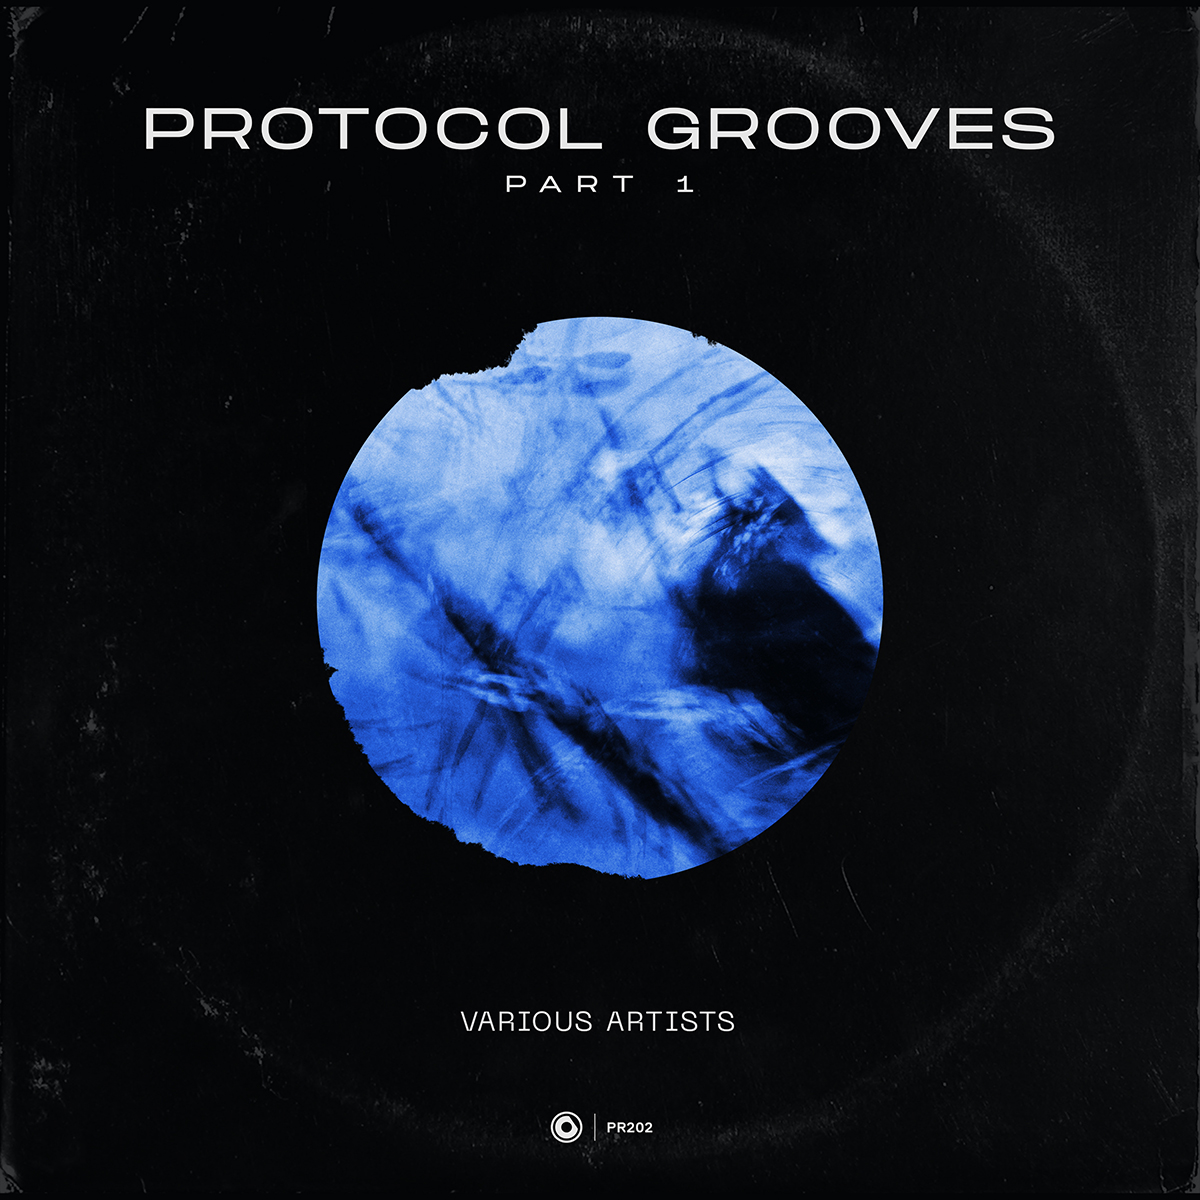 Protocol Grooves Pt. 1 EP